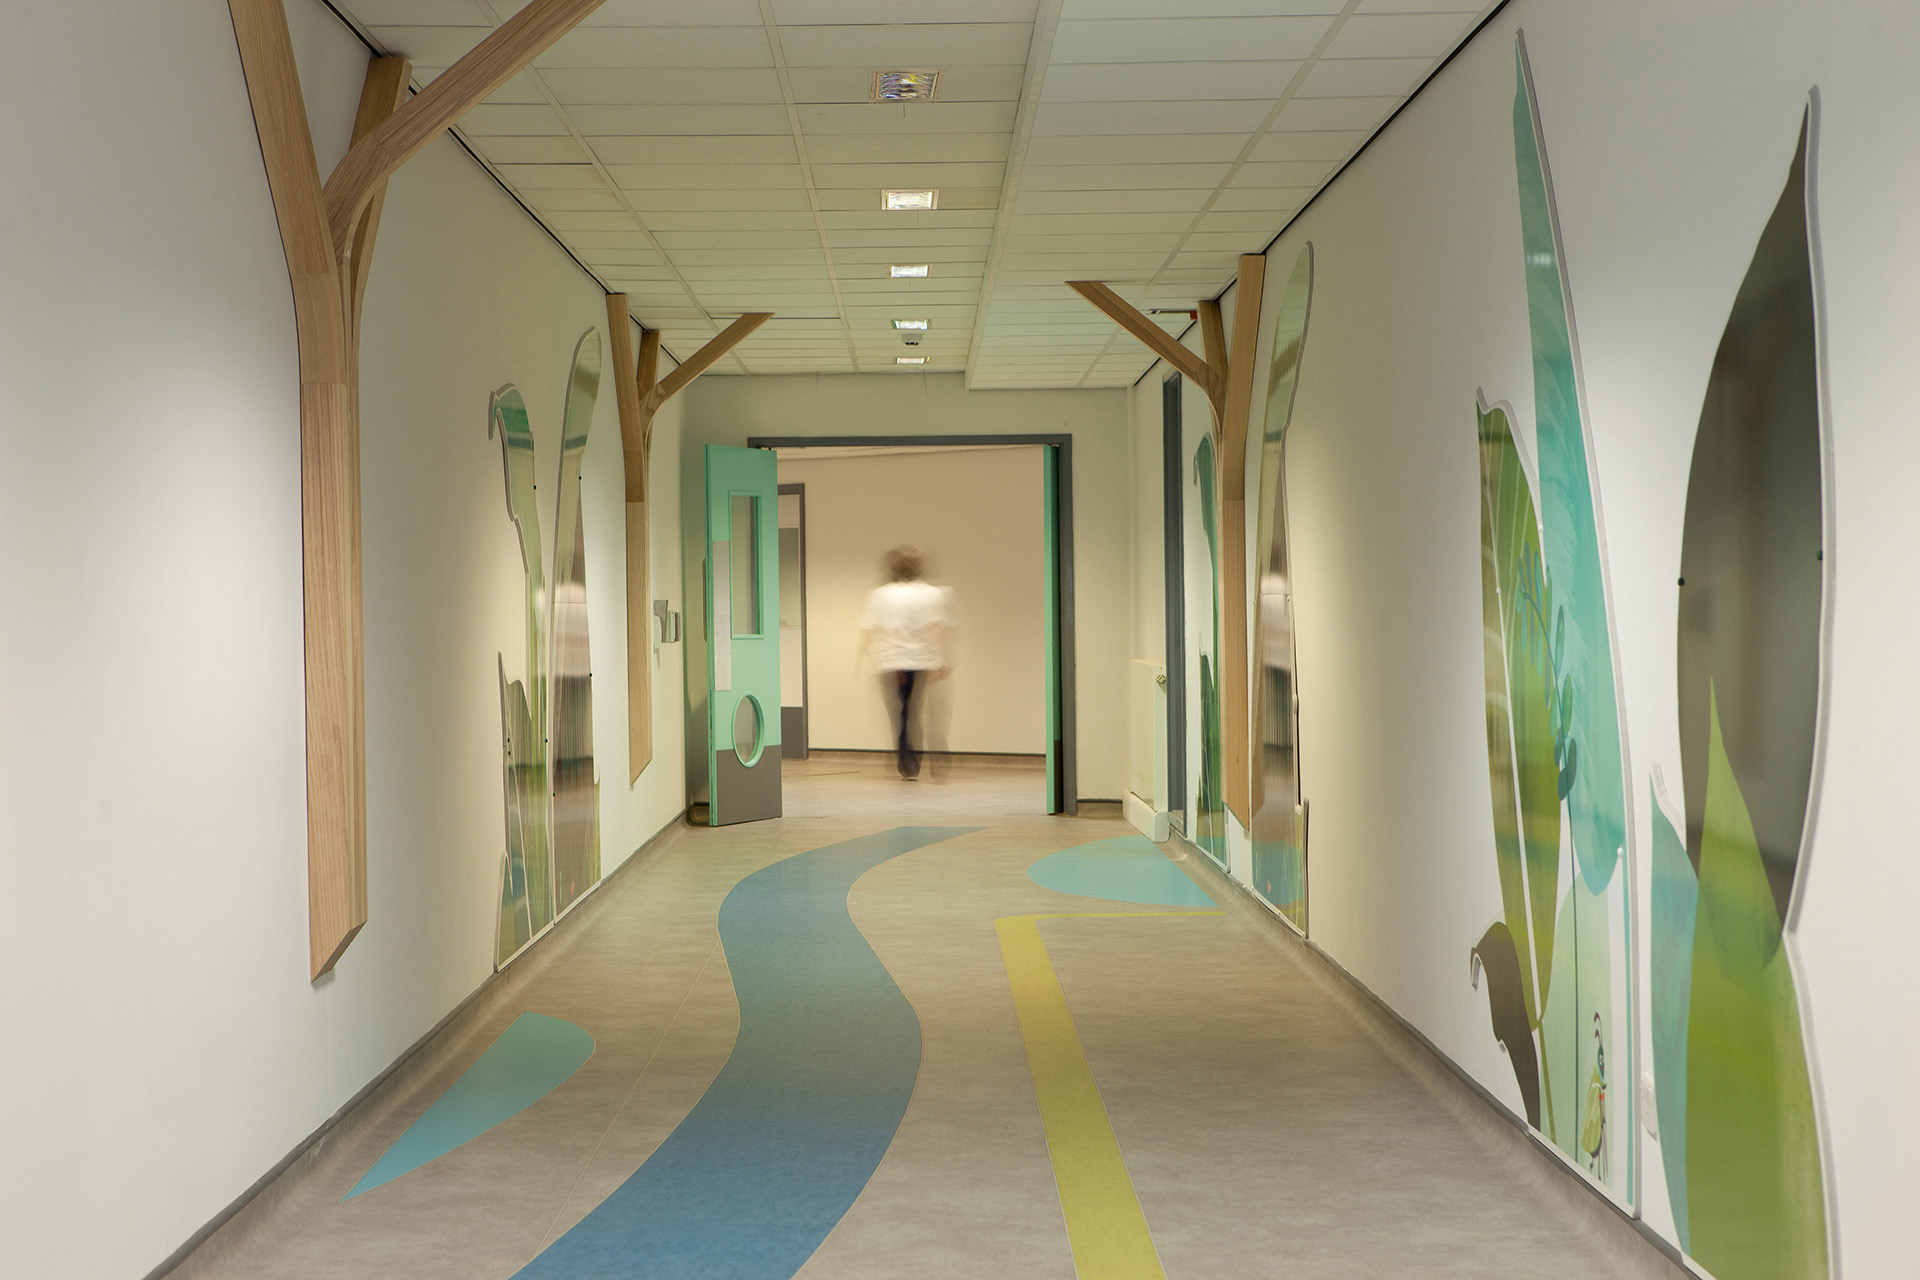 leaf inspired wall and floor graphics make corridors a more inviting space